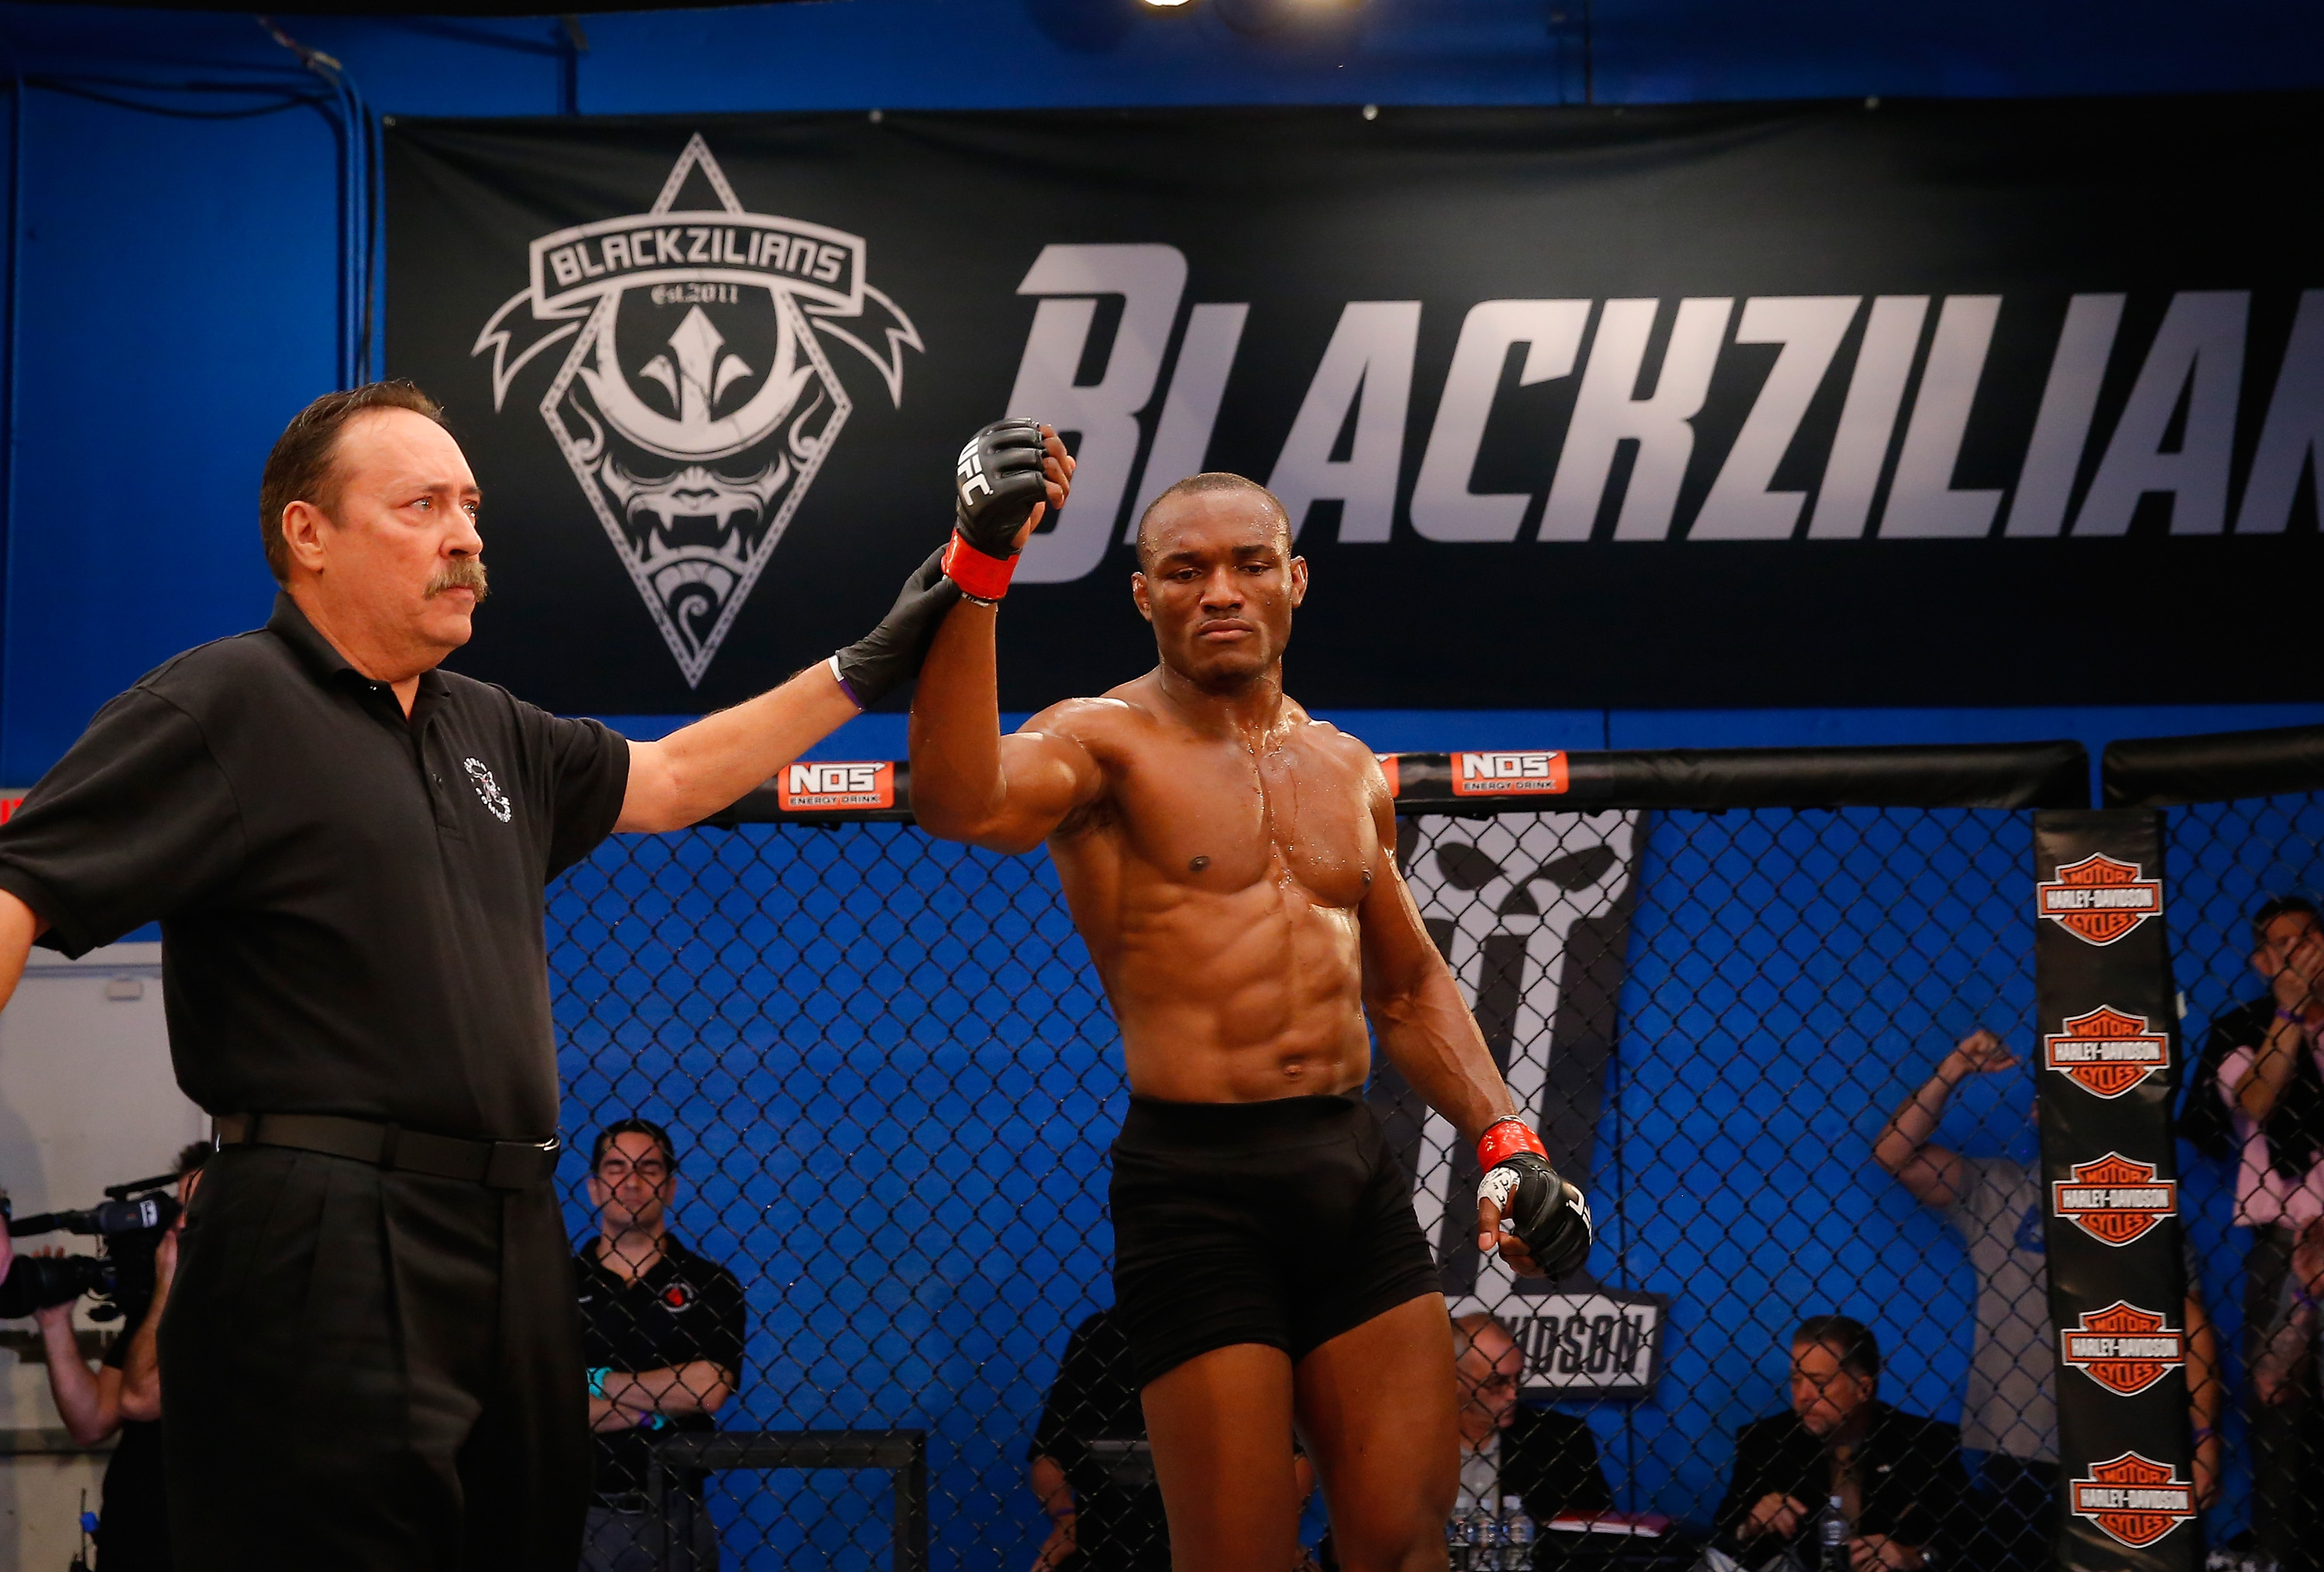 BOCA RATON, FL - JANUARY 27: Kamarudeen Usman celebrates his victory over Michael Graves during the filming of The Ultimate Fighter: American Top Team vs Blackzilians on January 27, 2015 in Boca Raton, Florida. (Photo by Christopher Trotman/Zuffa LLC/Zuffa LLC via Getty Images)